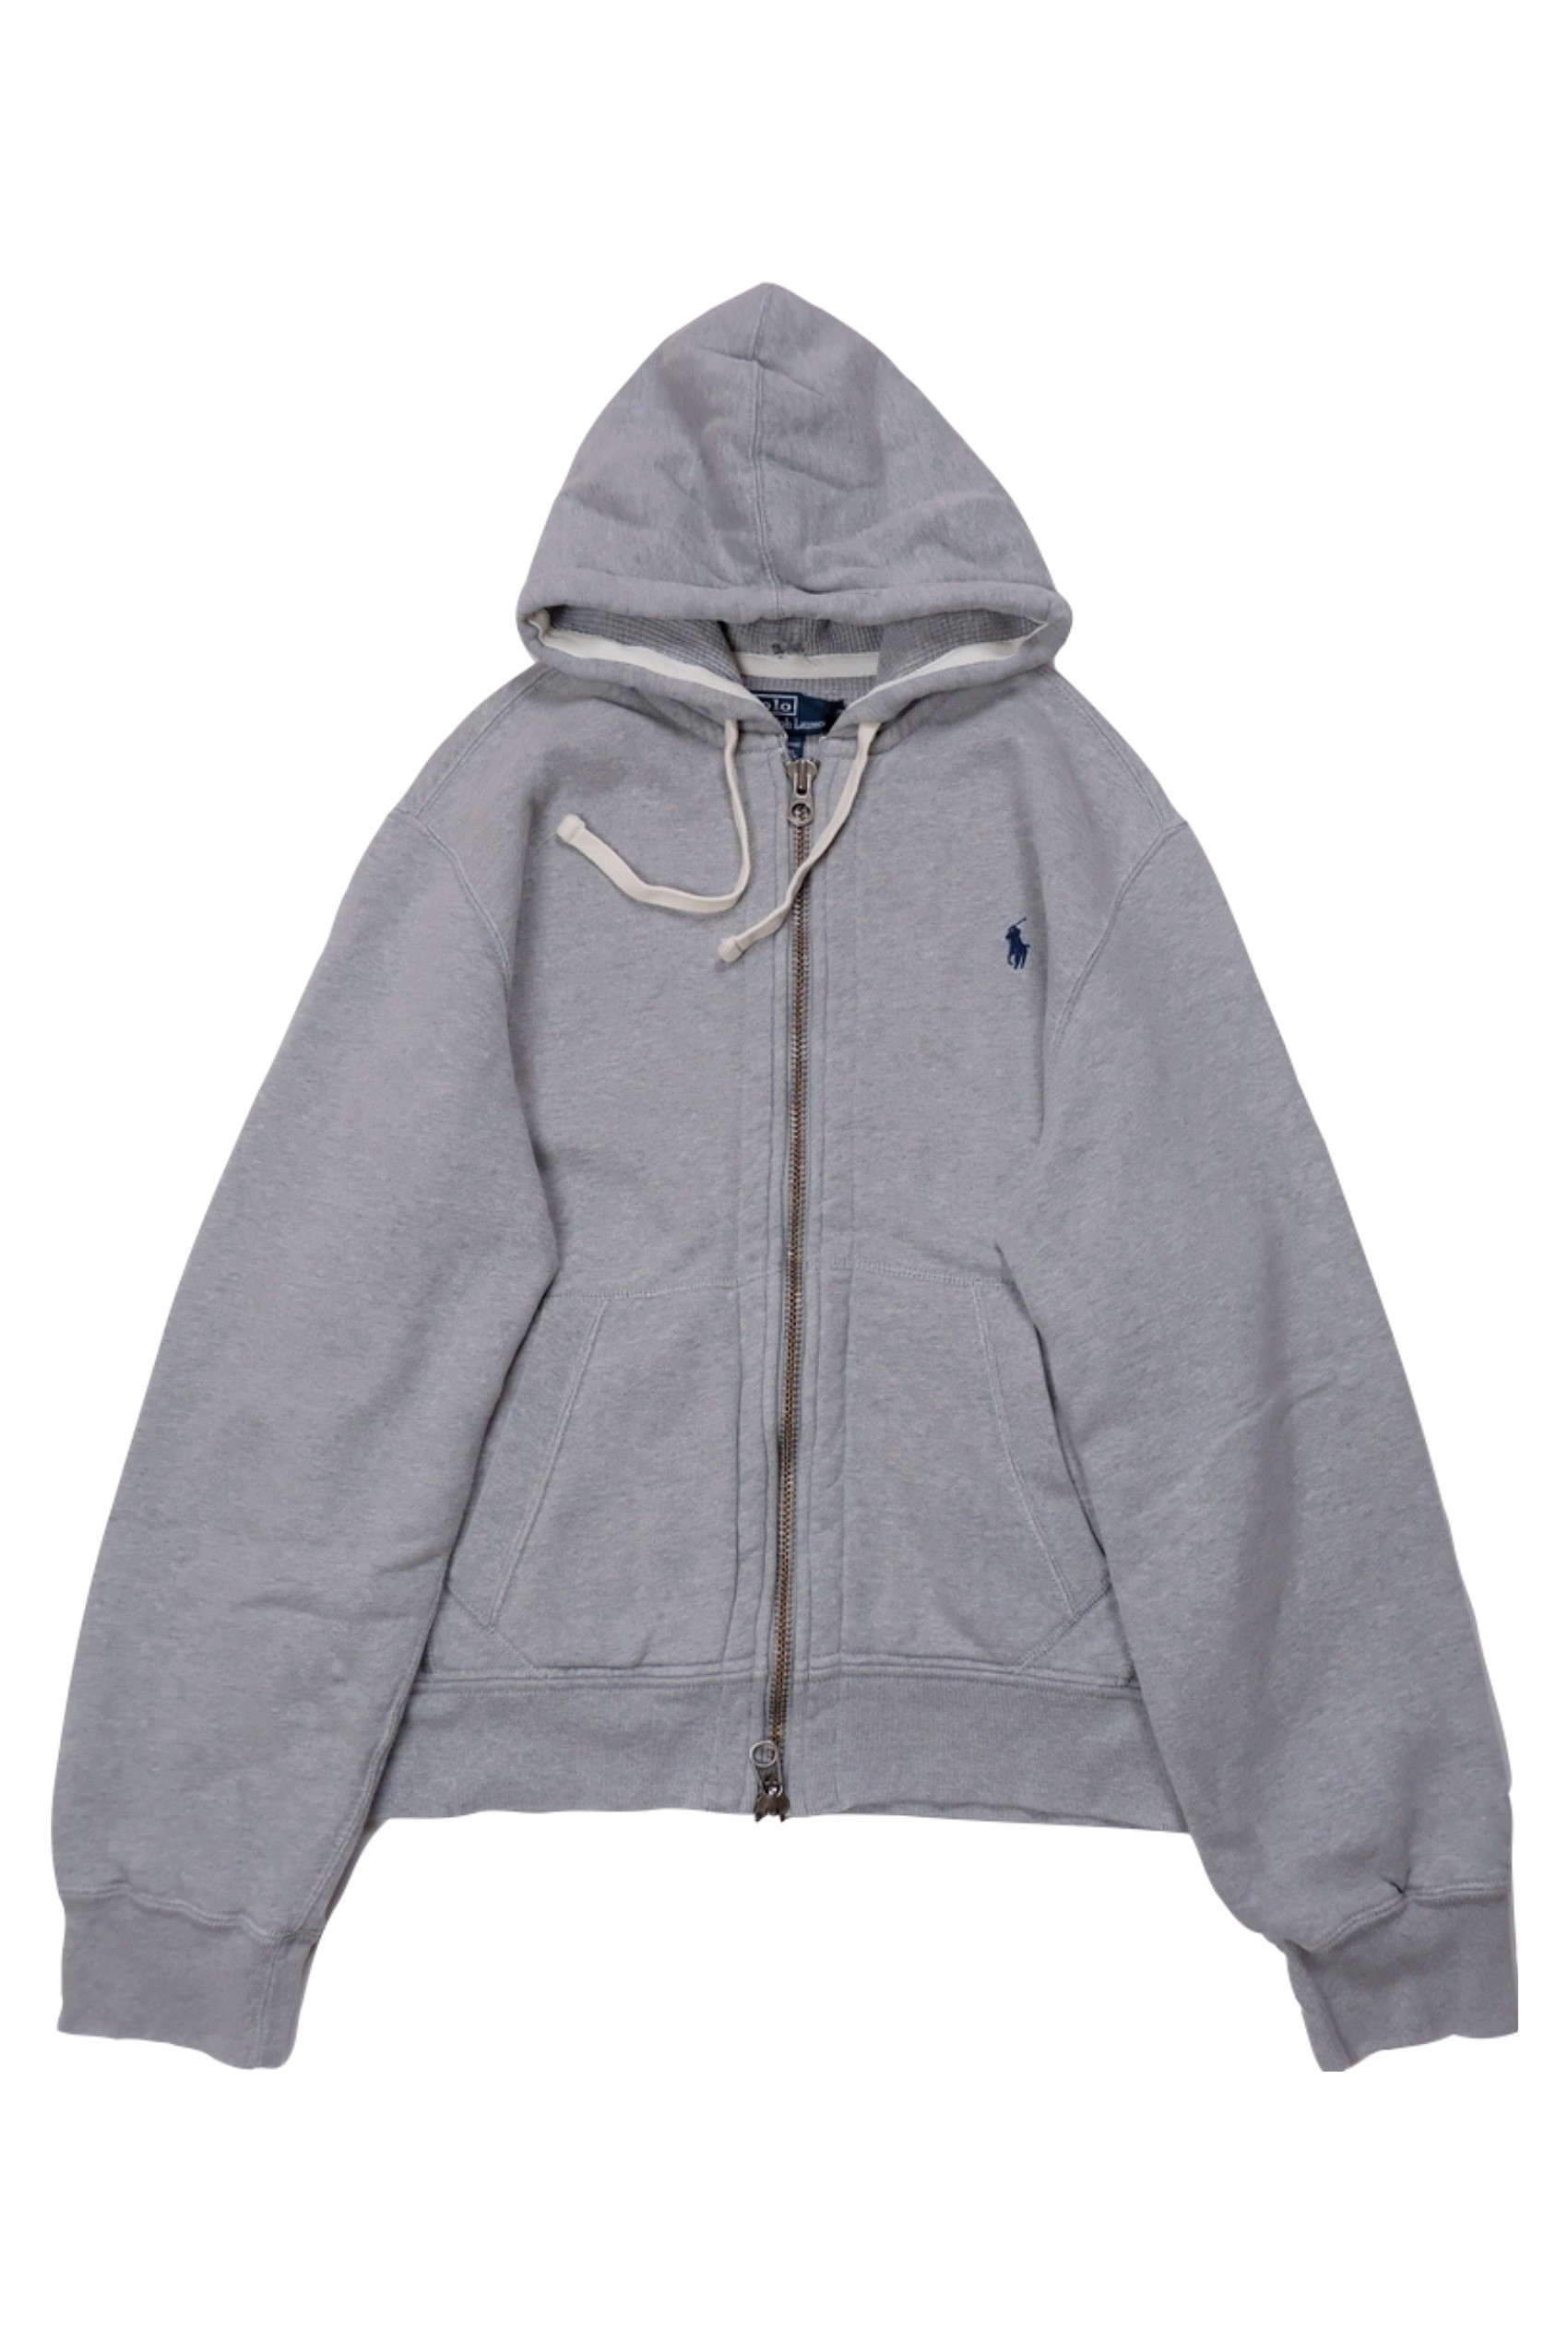 Ralph Lauren PoloDouble layer Sweat Parka